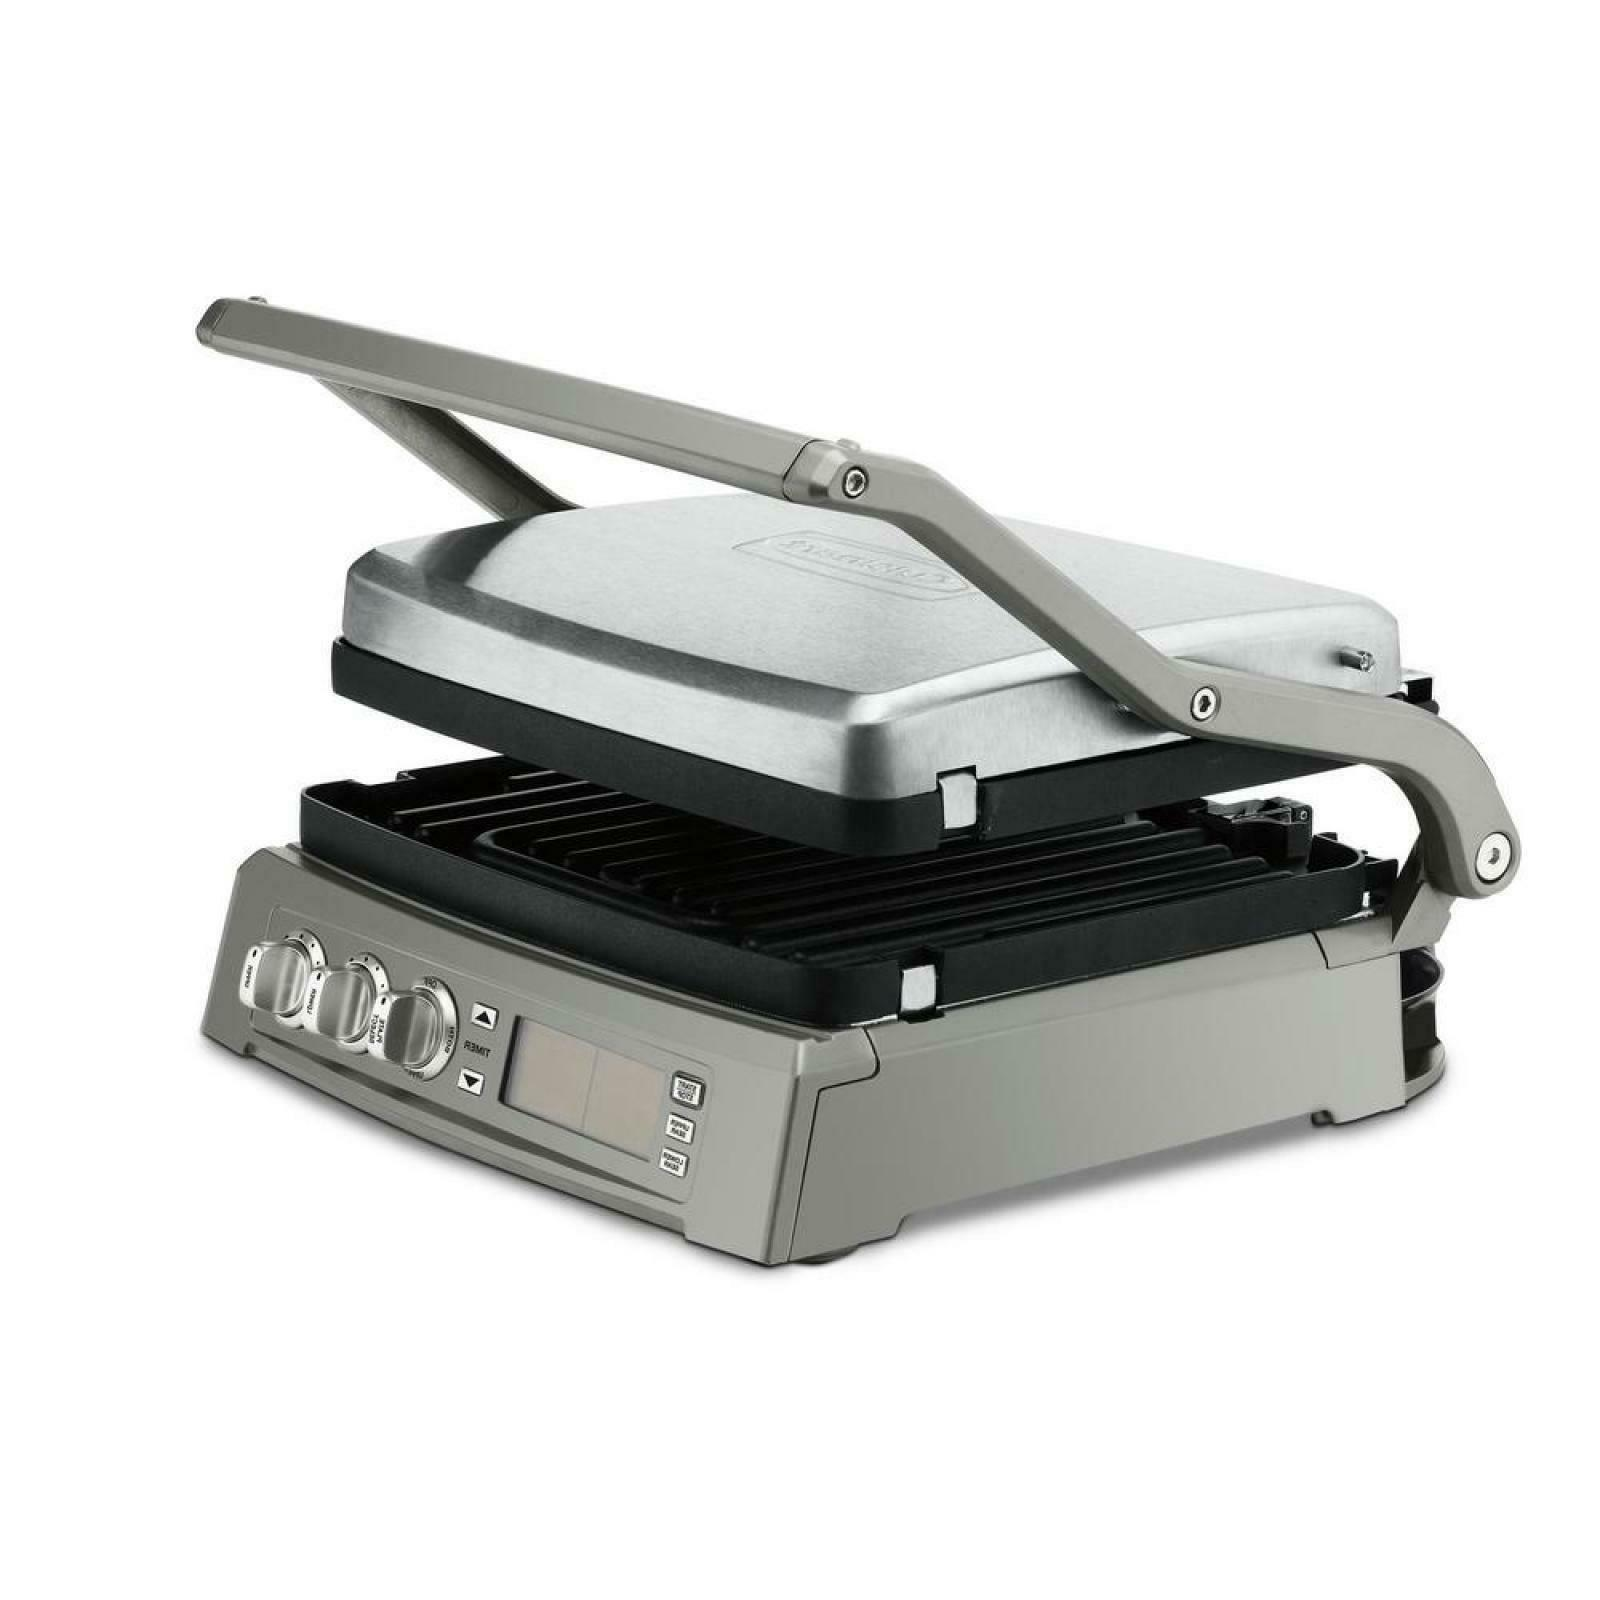 Cuisinart indoor Grill Elite Electric Stainless